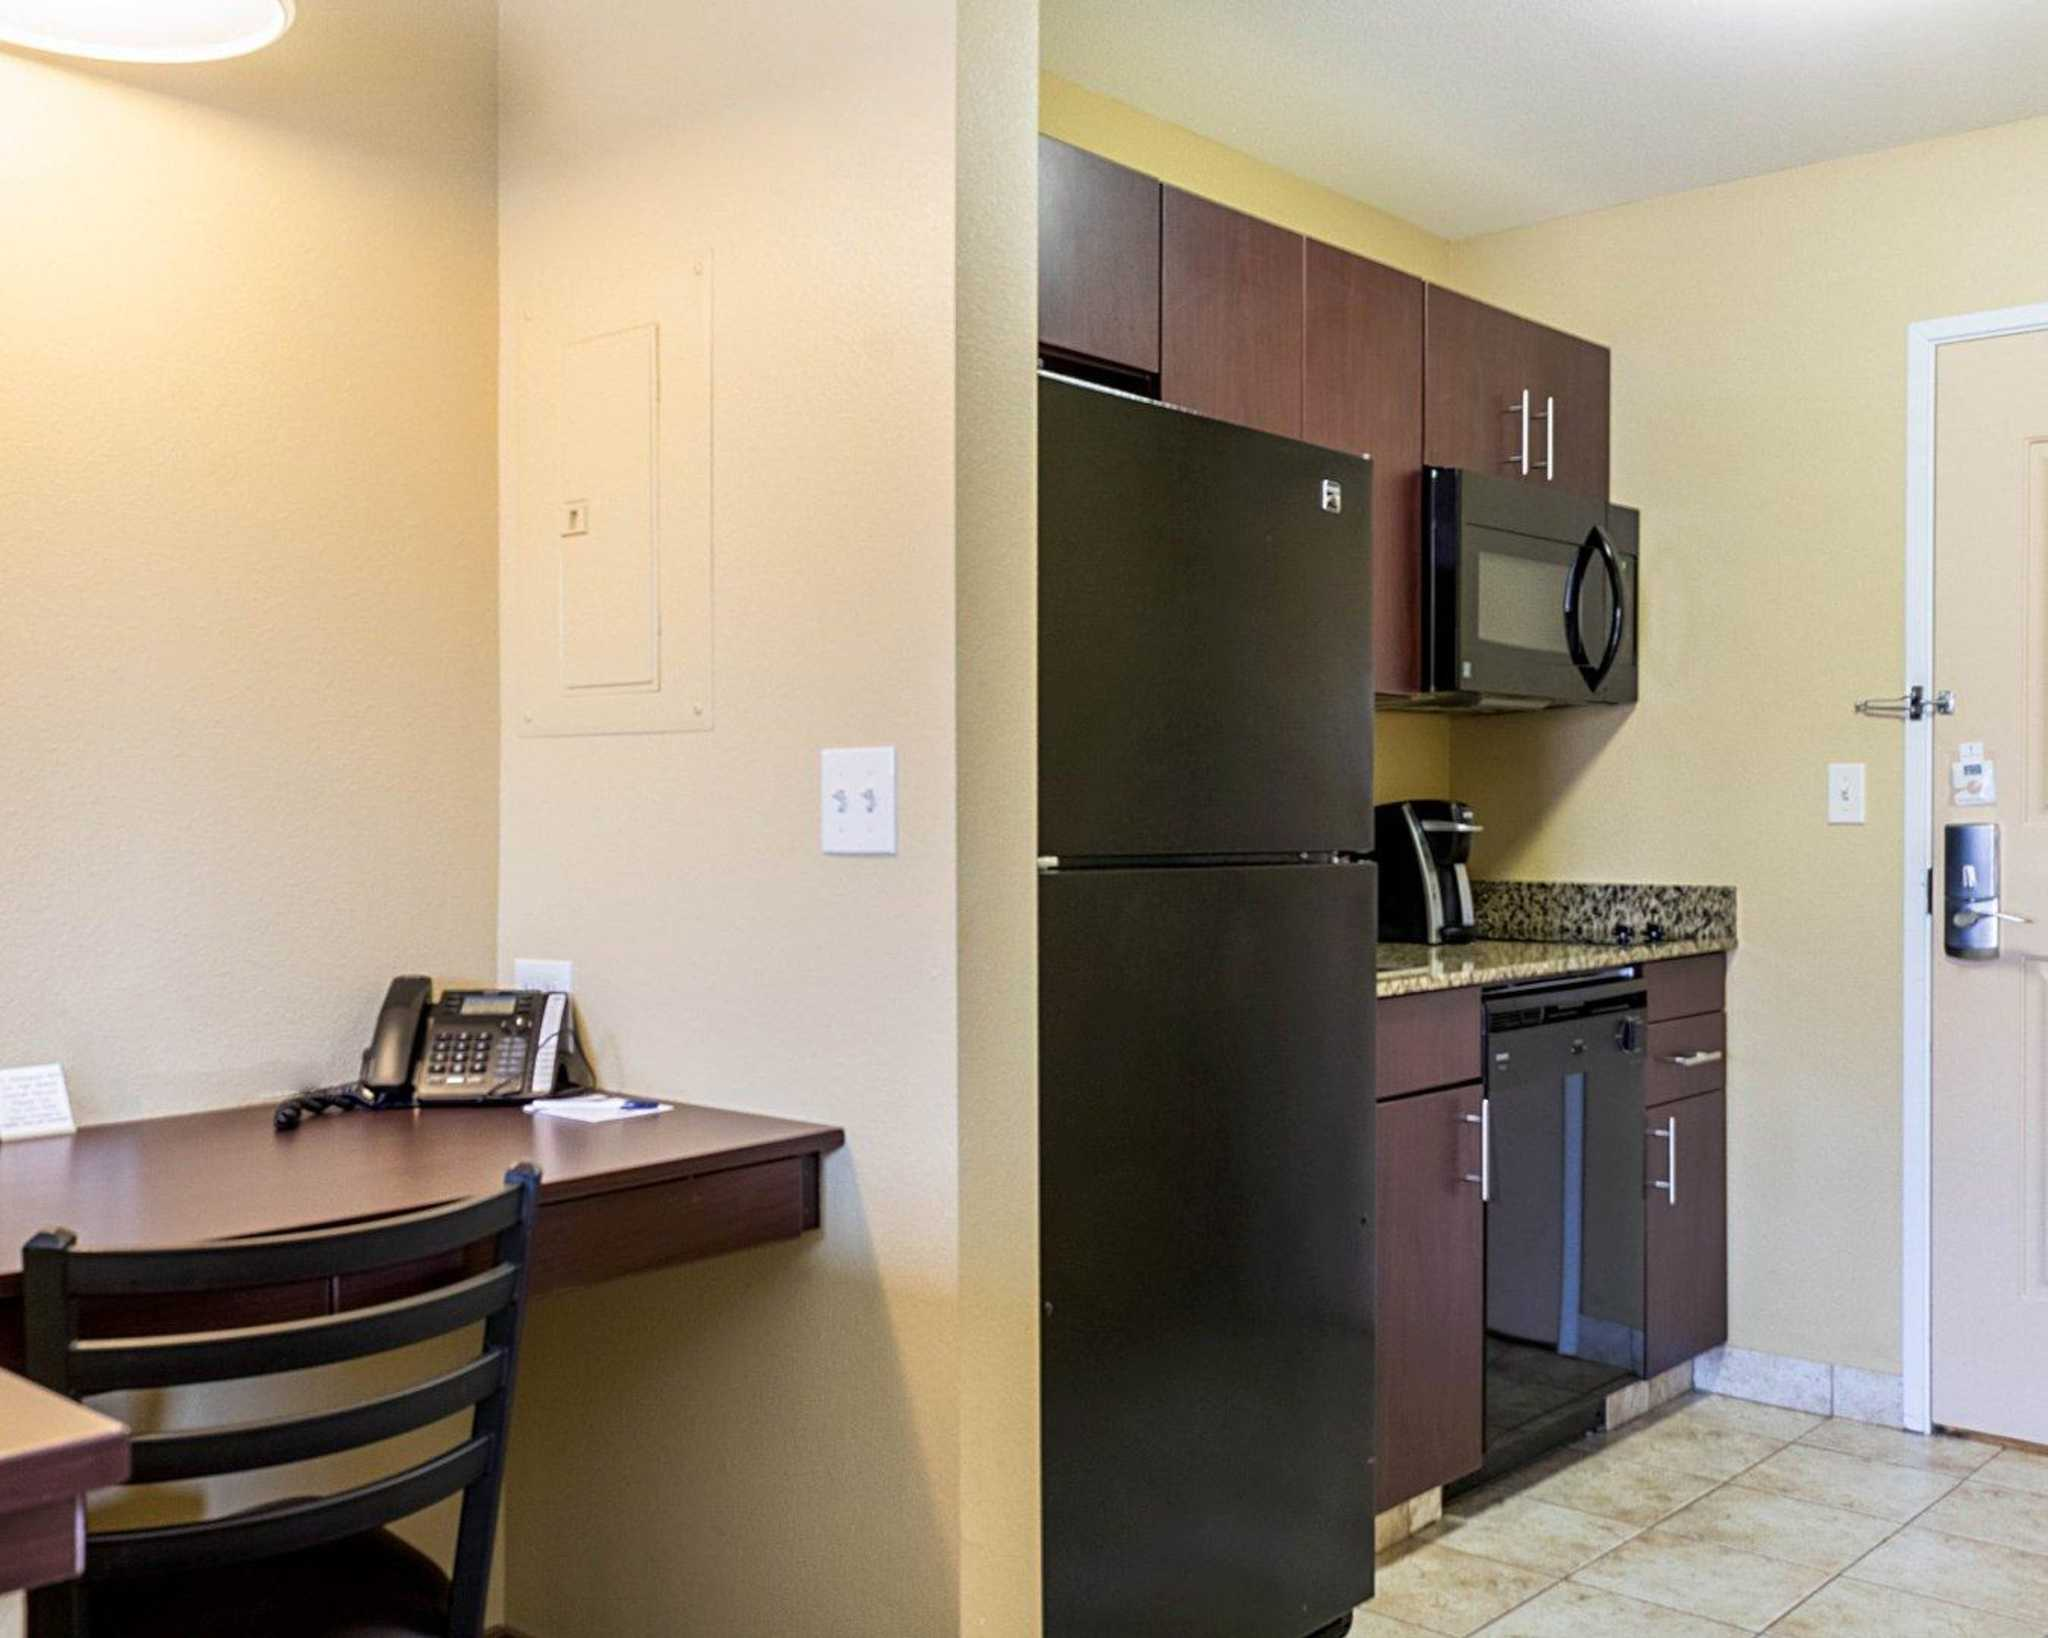 MainStay Suites image 28